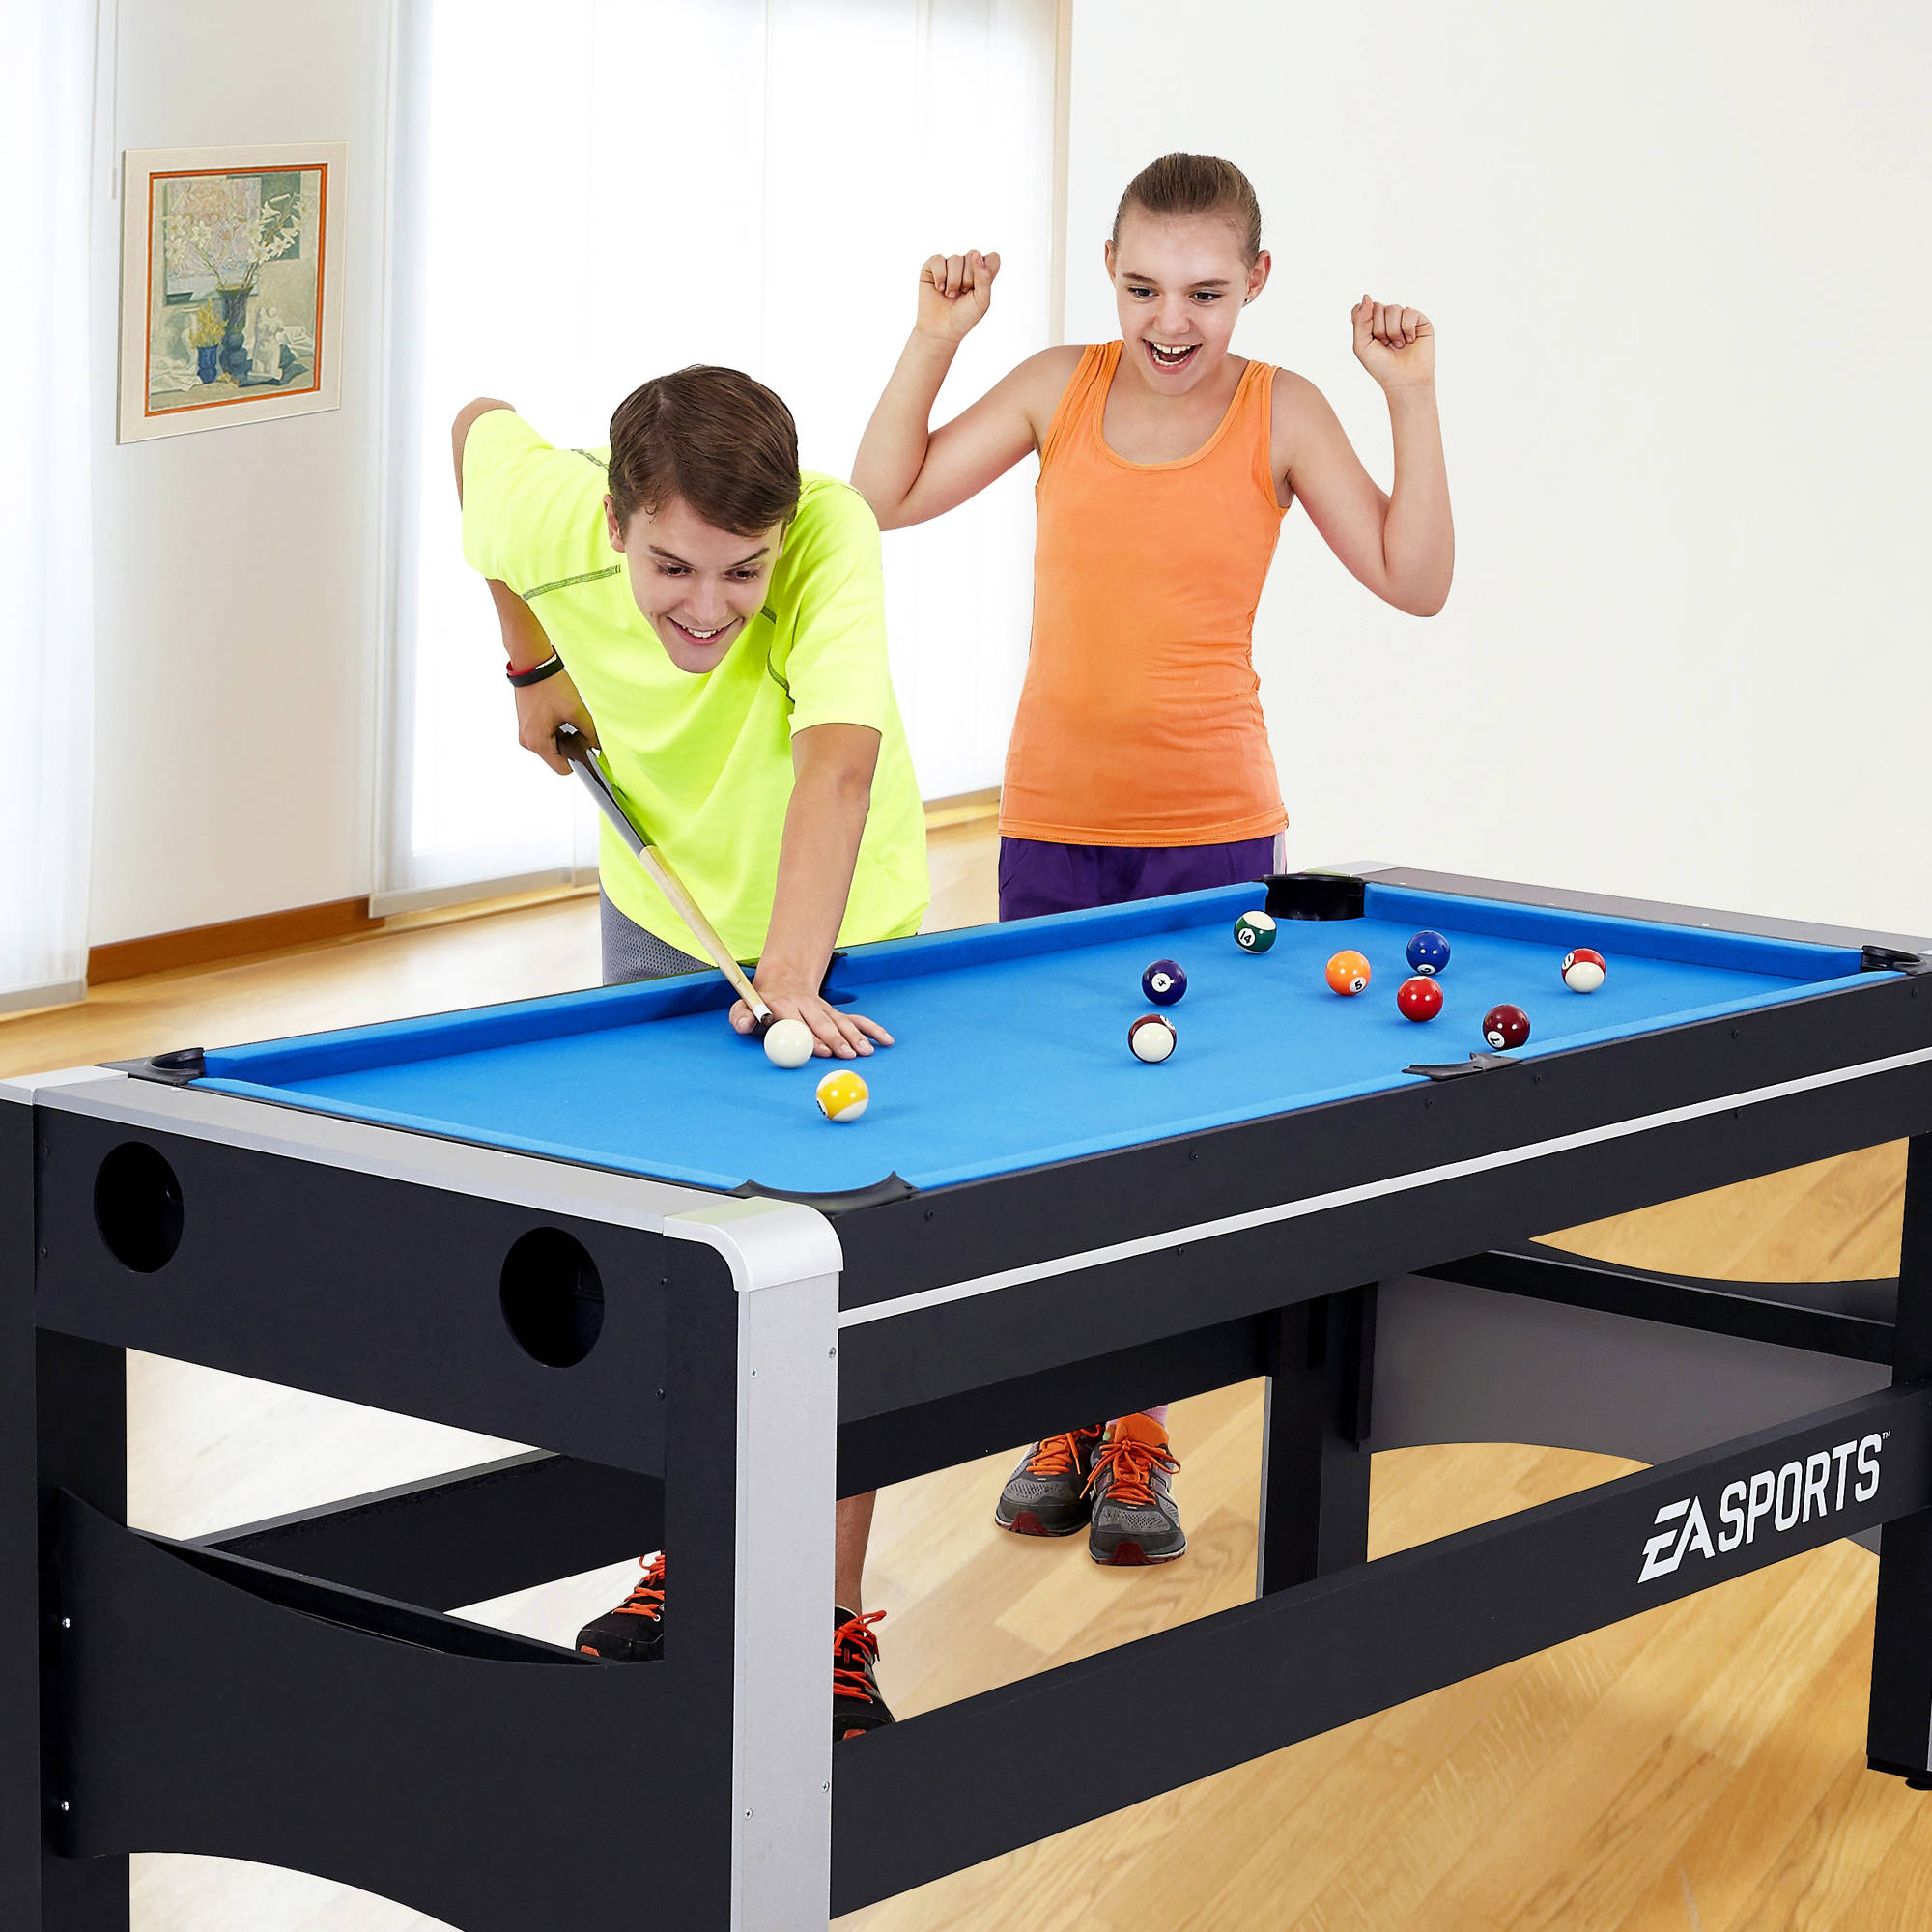 EA Sports 72 Inch 4 In 1 Swivel Combo Game Table, 4 Games With Hockey,  Billiards, Table Tennis And Finger Shoot Basketball   Walmart.com